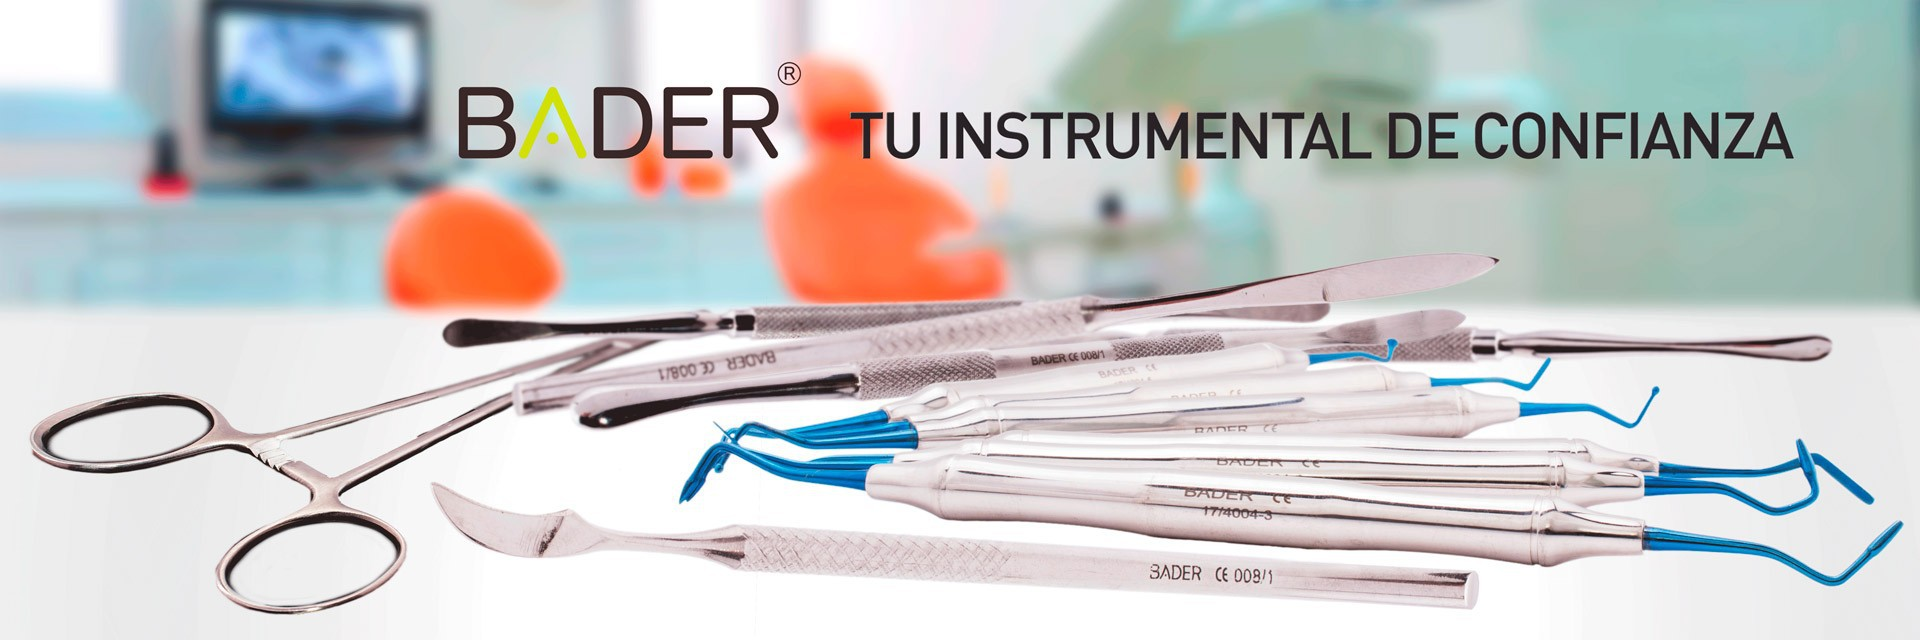 Deposito Dental Top Quality Dent - Distribuidor materiales dentales BADER